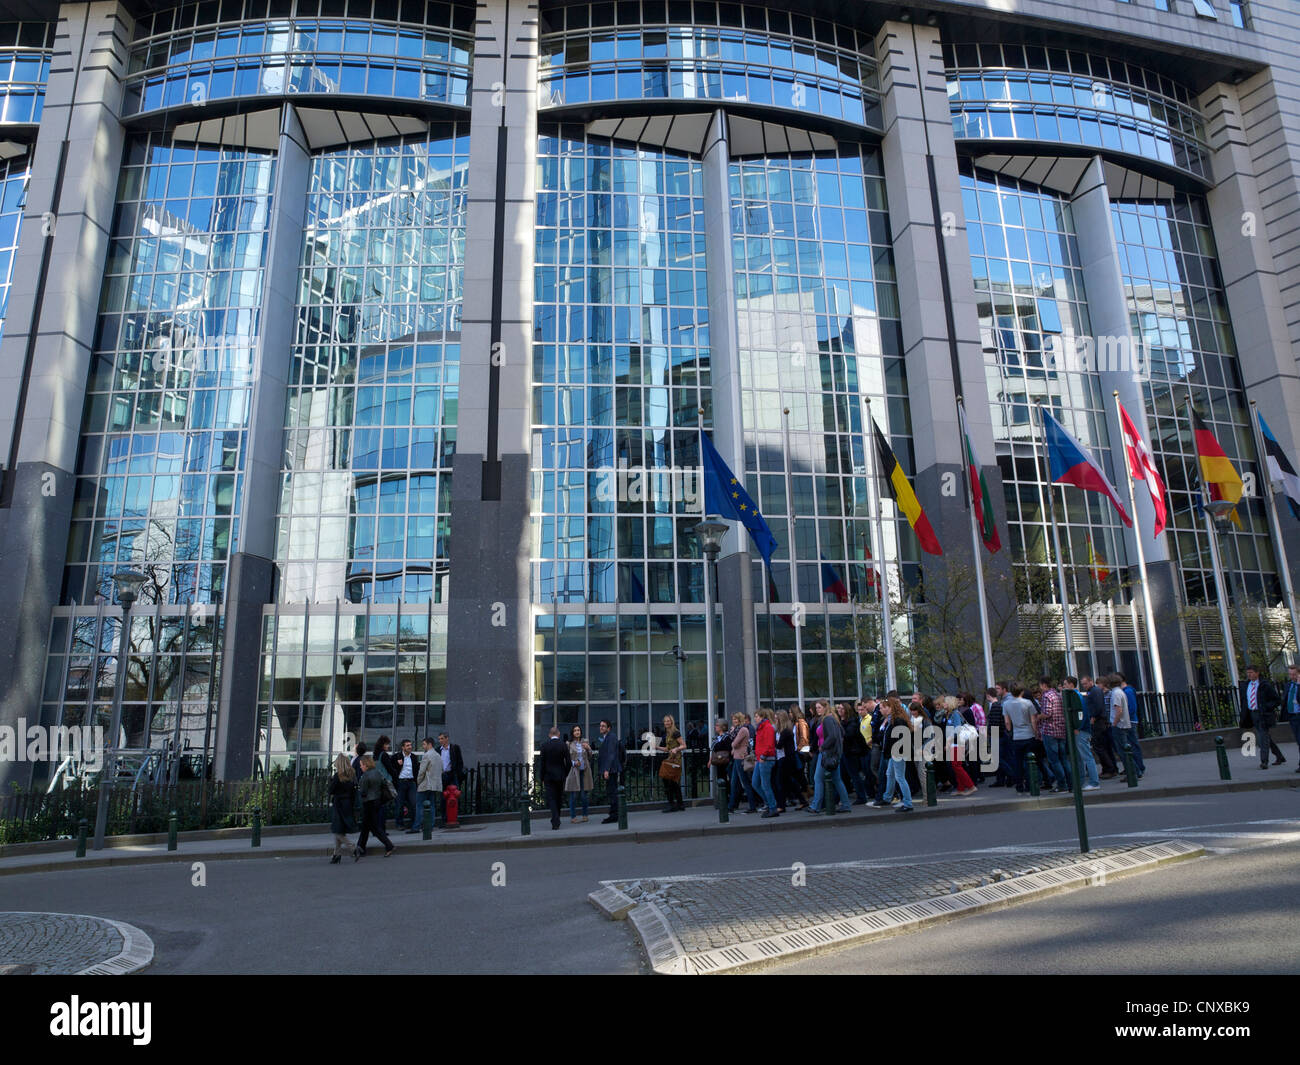 Group of students visiting the European Parliament building in Brussels, Belgium - Stock Image